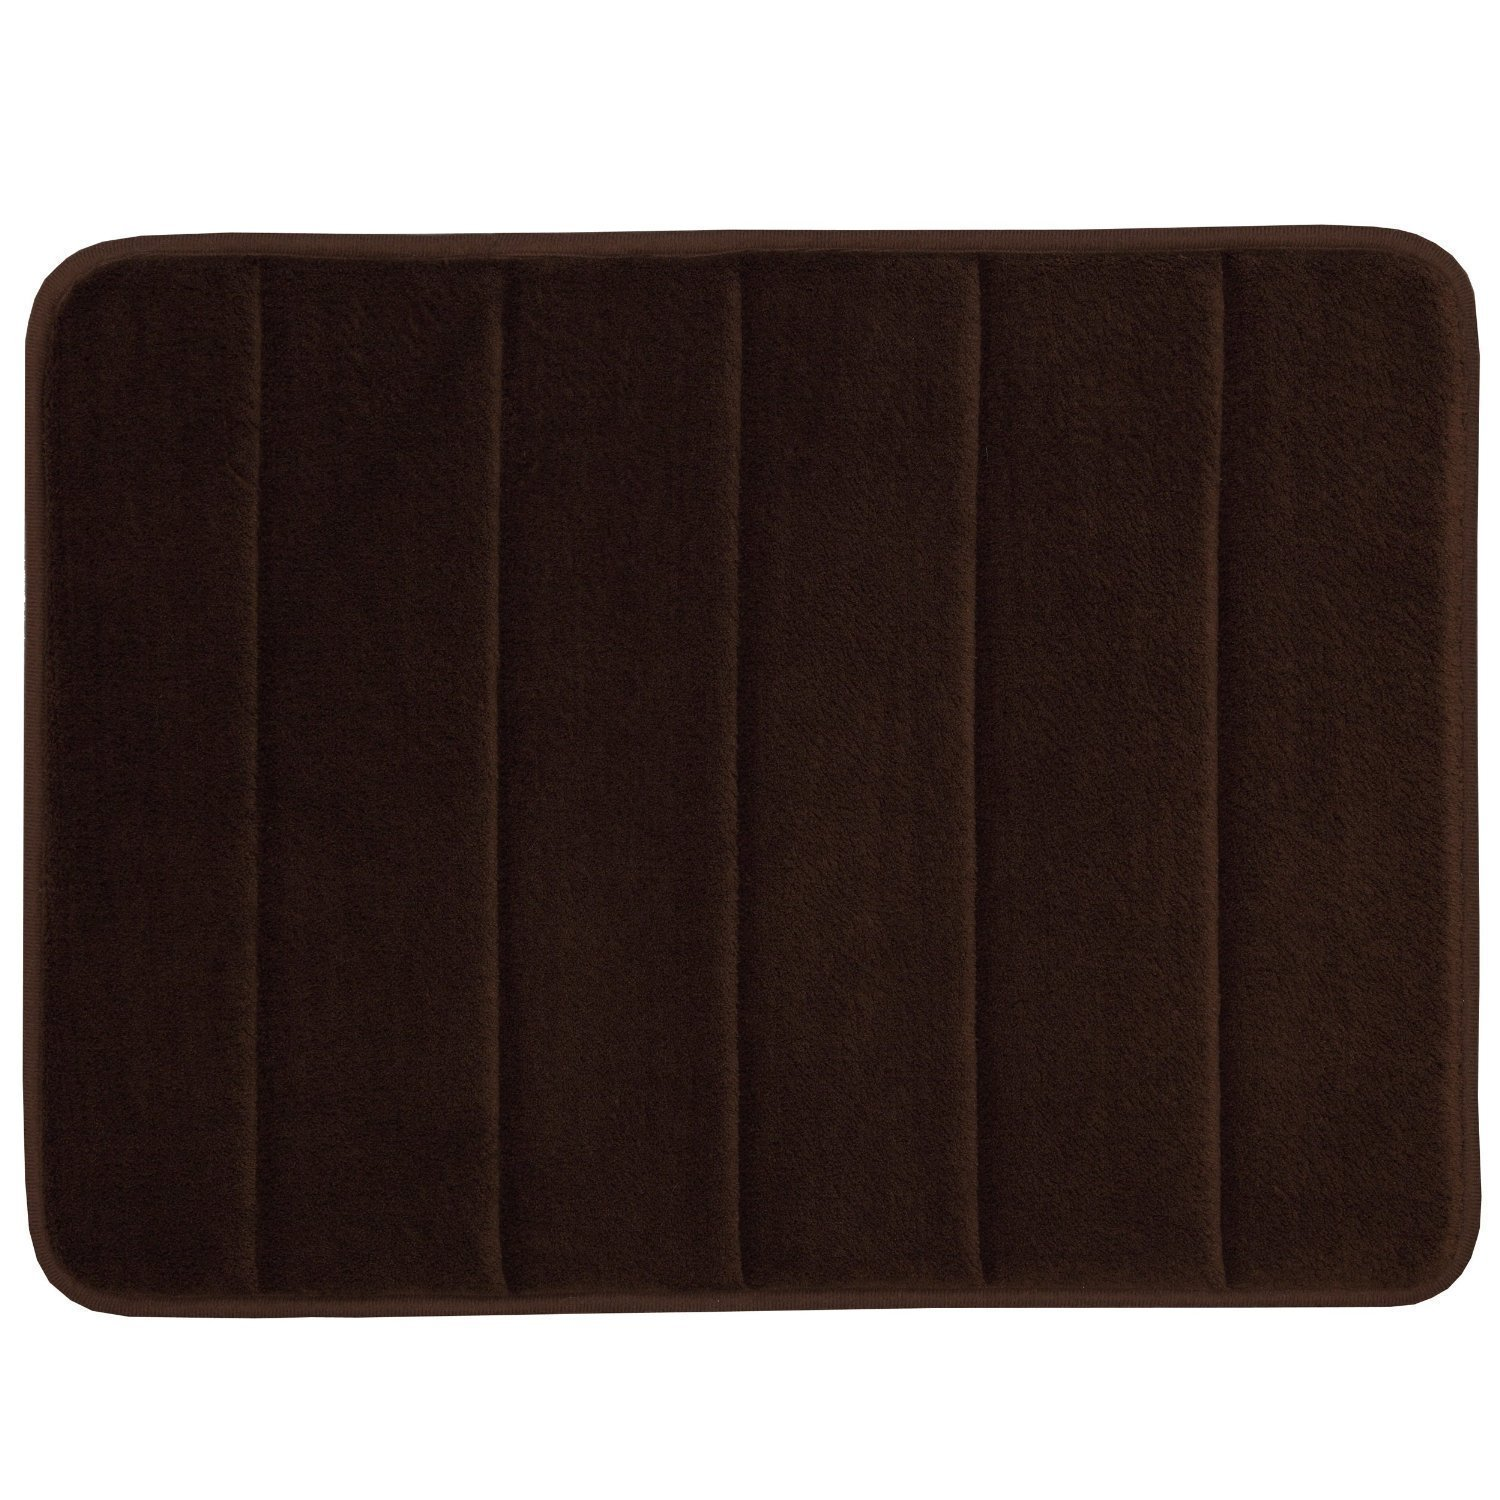 WPMS Incredibly Soft and Absorbent Memory Foam Bath Mat, 17 By 24-inch (Brown) AHF SYNCHKG127522